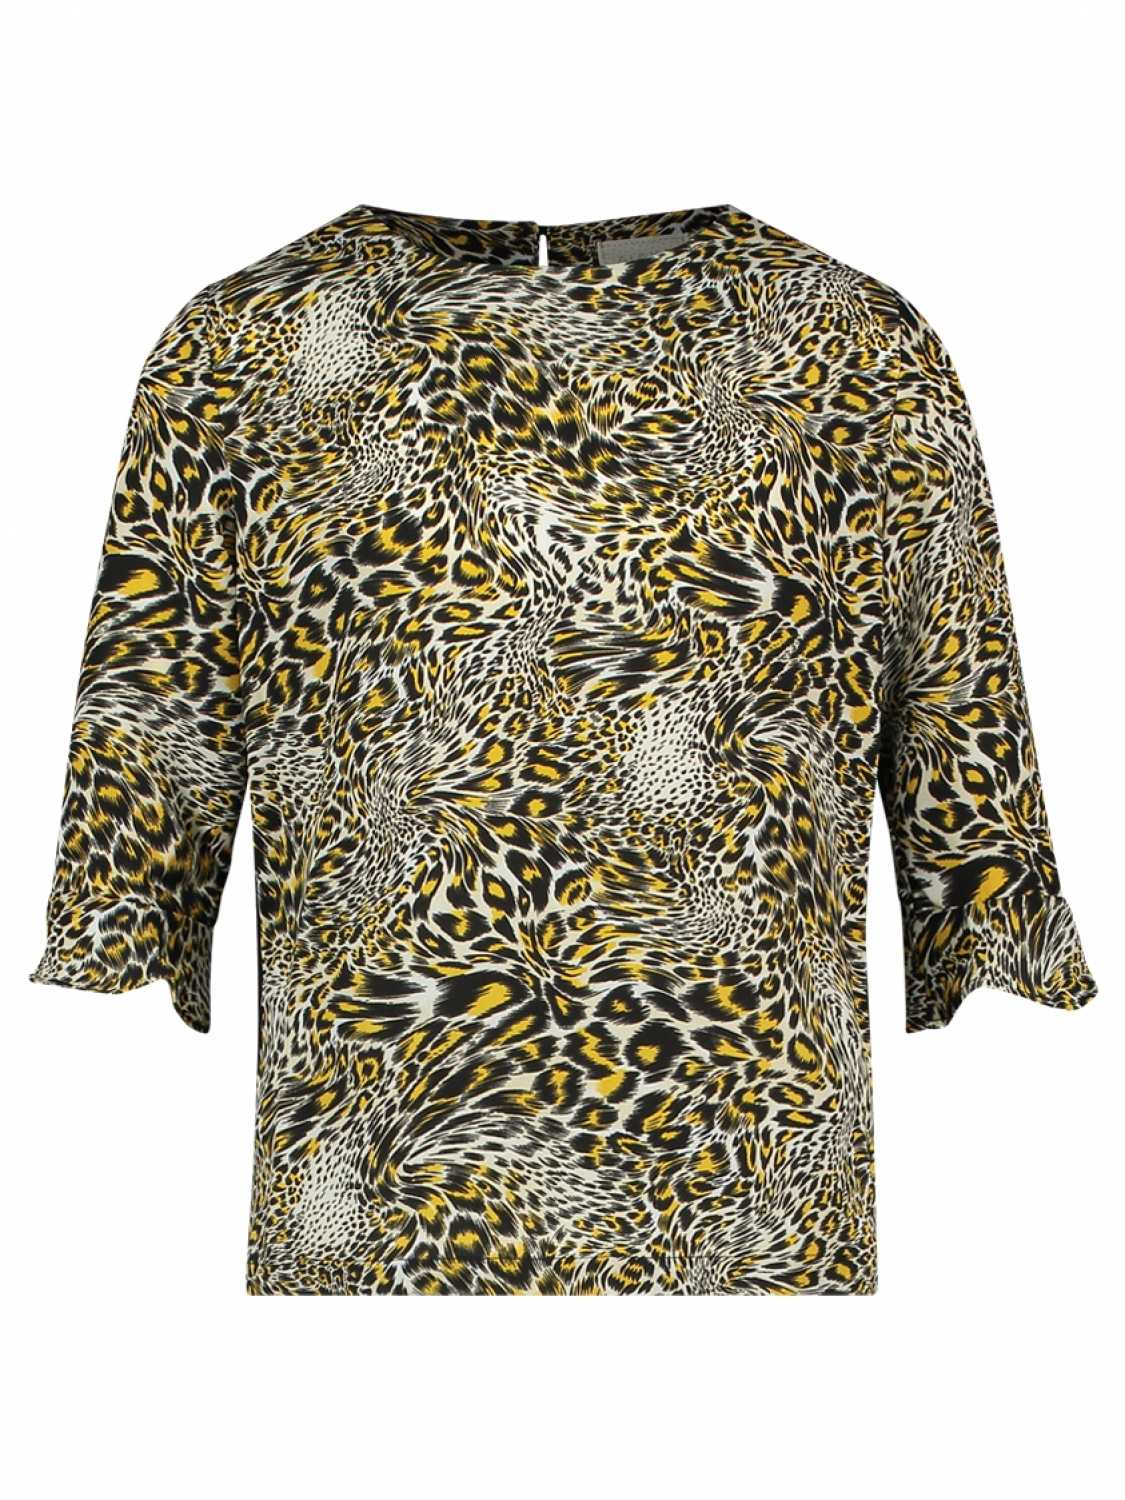 AI&KO Shirt lange mouw - meisjes - All over print -